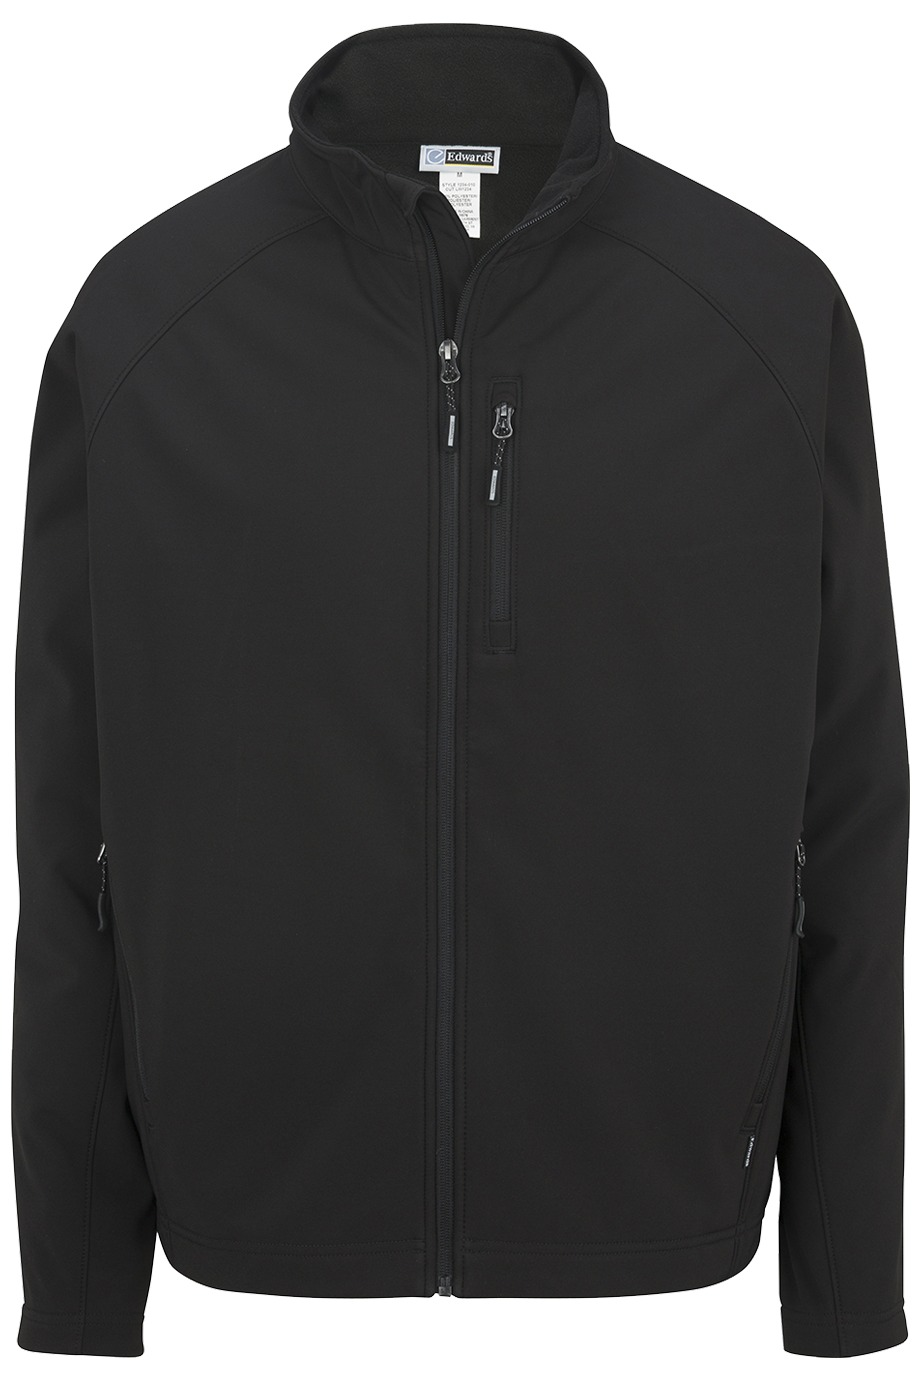 Edwards Garment 3420 - Men's Soft Shell Jacket